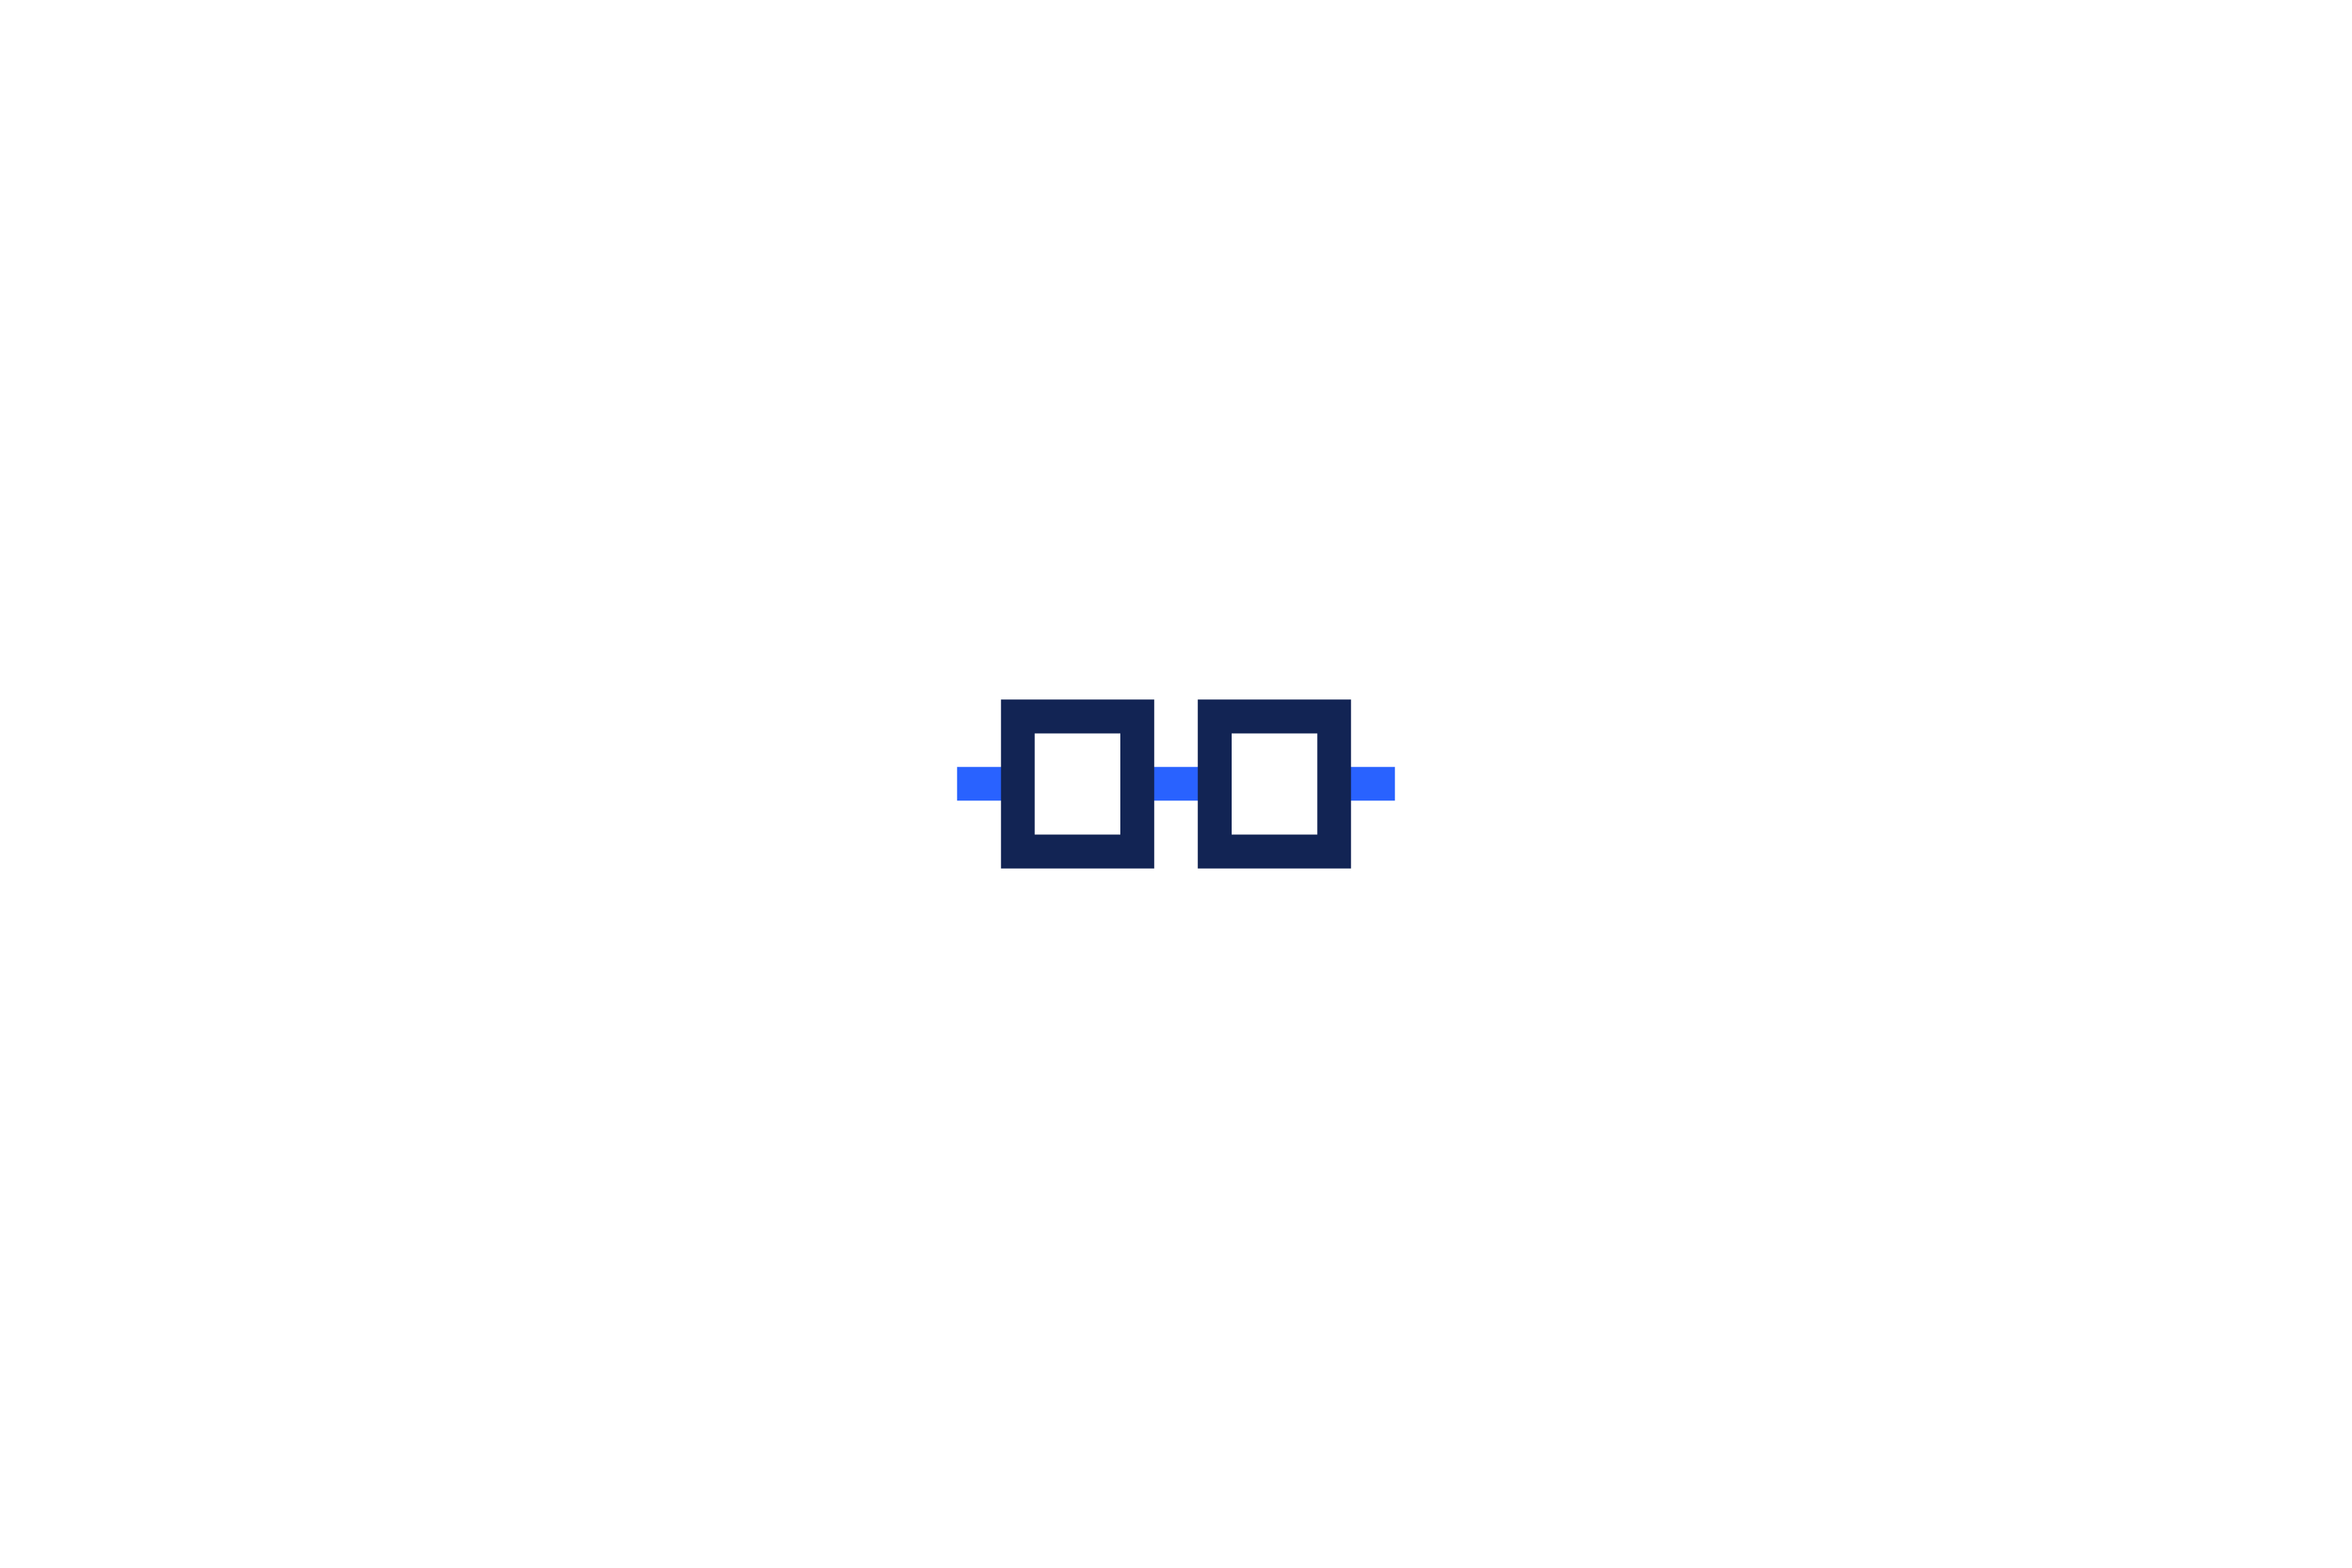 Sparkfund_Icons_7